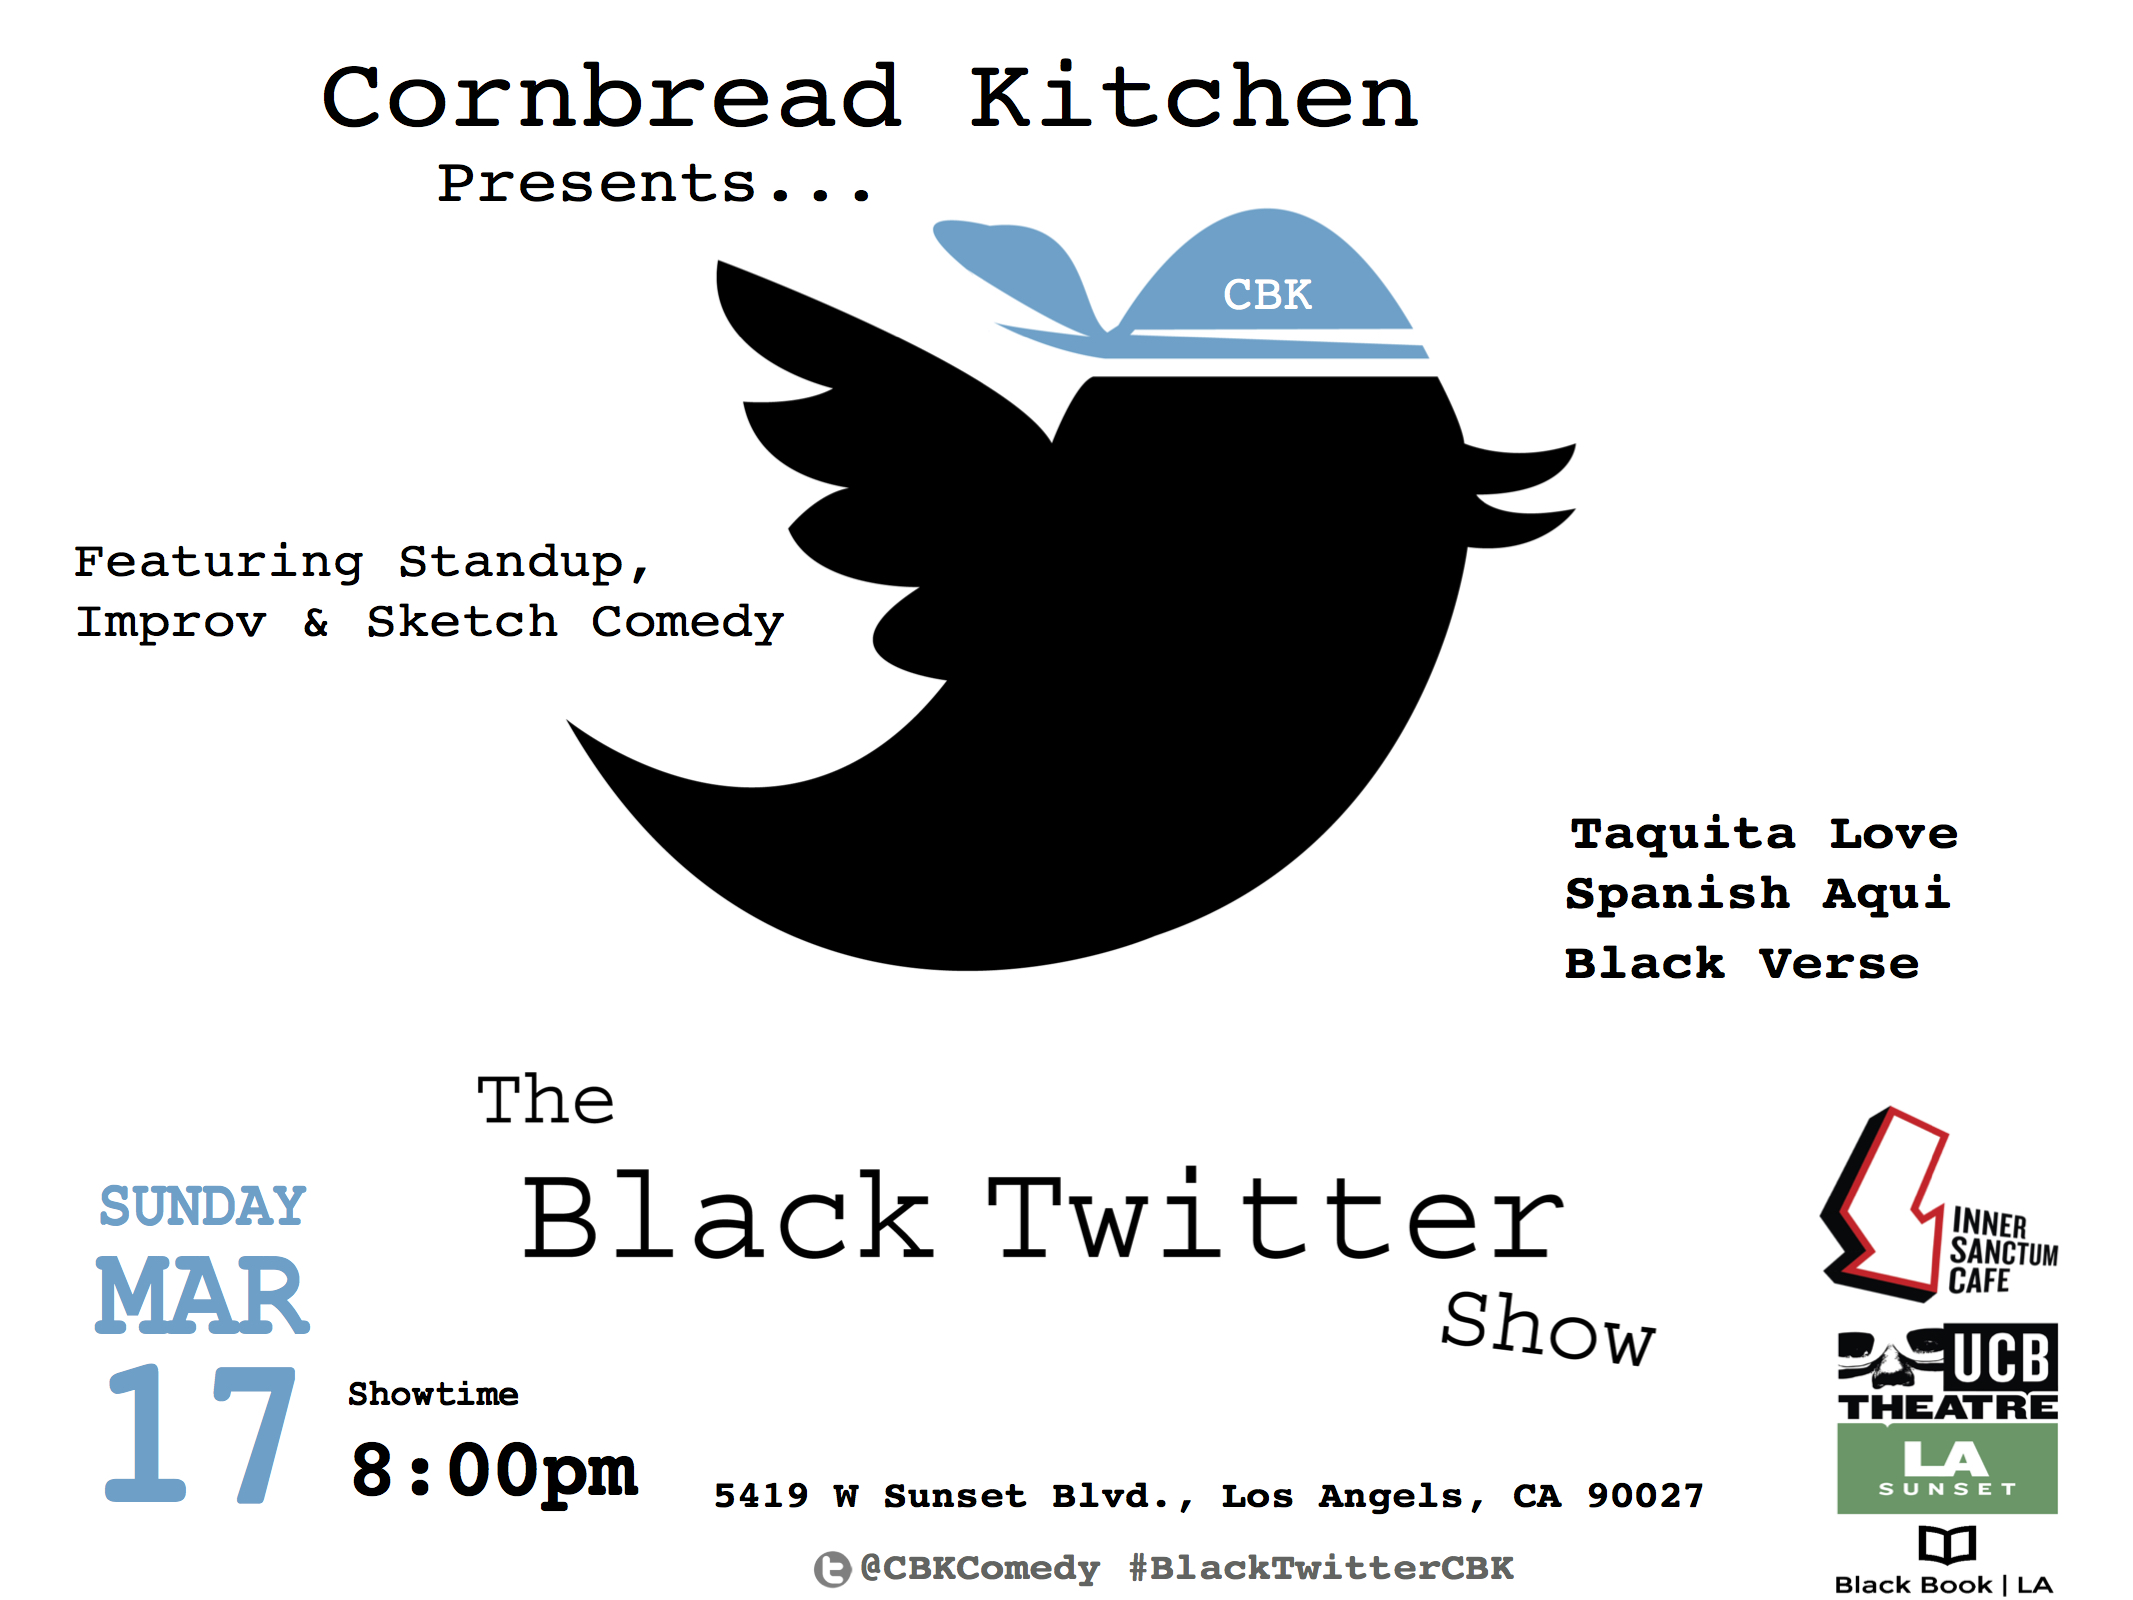 BLACK TWITTER SHOW FLYER MAR 19 .jpg